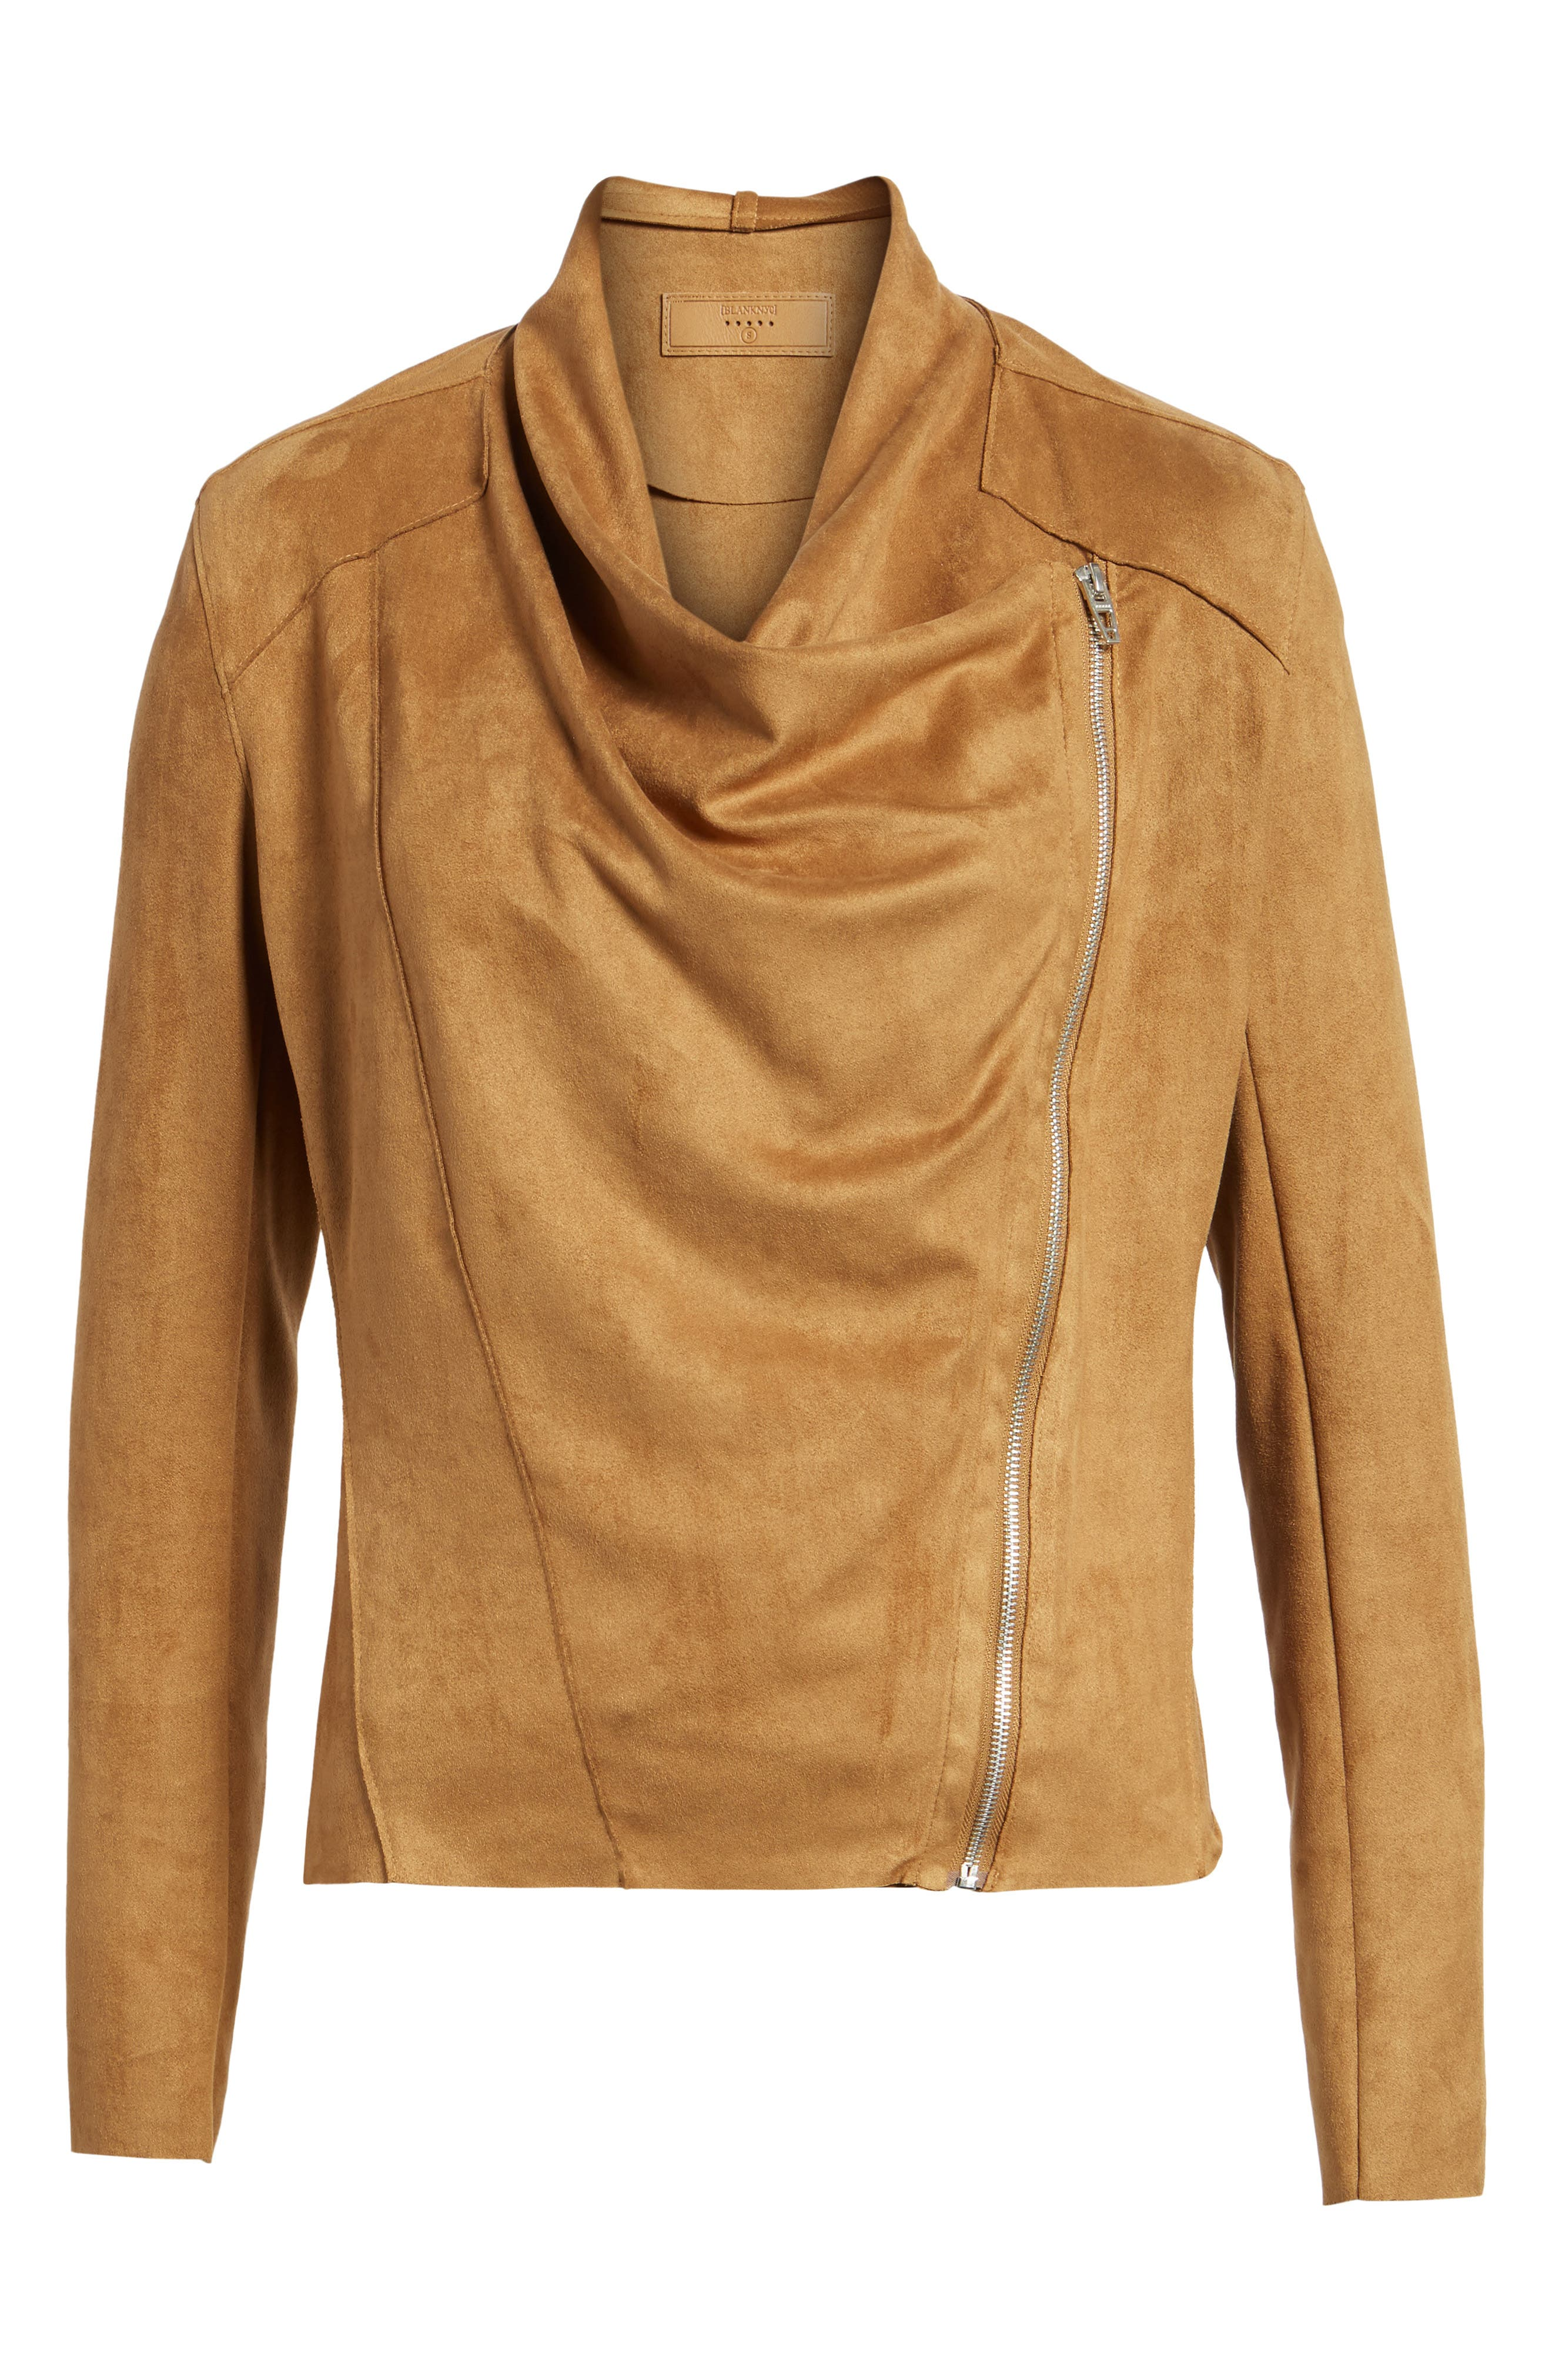 BLANKNYC,                             Drape Front Faux Suede Jacket,                             Alternate thumbnail 6, color,                             CAMEL BACK BROWN